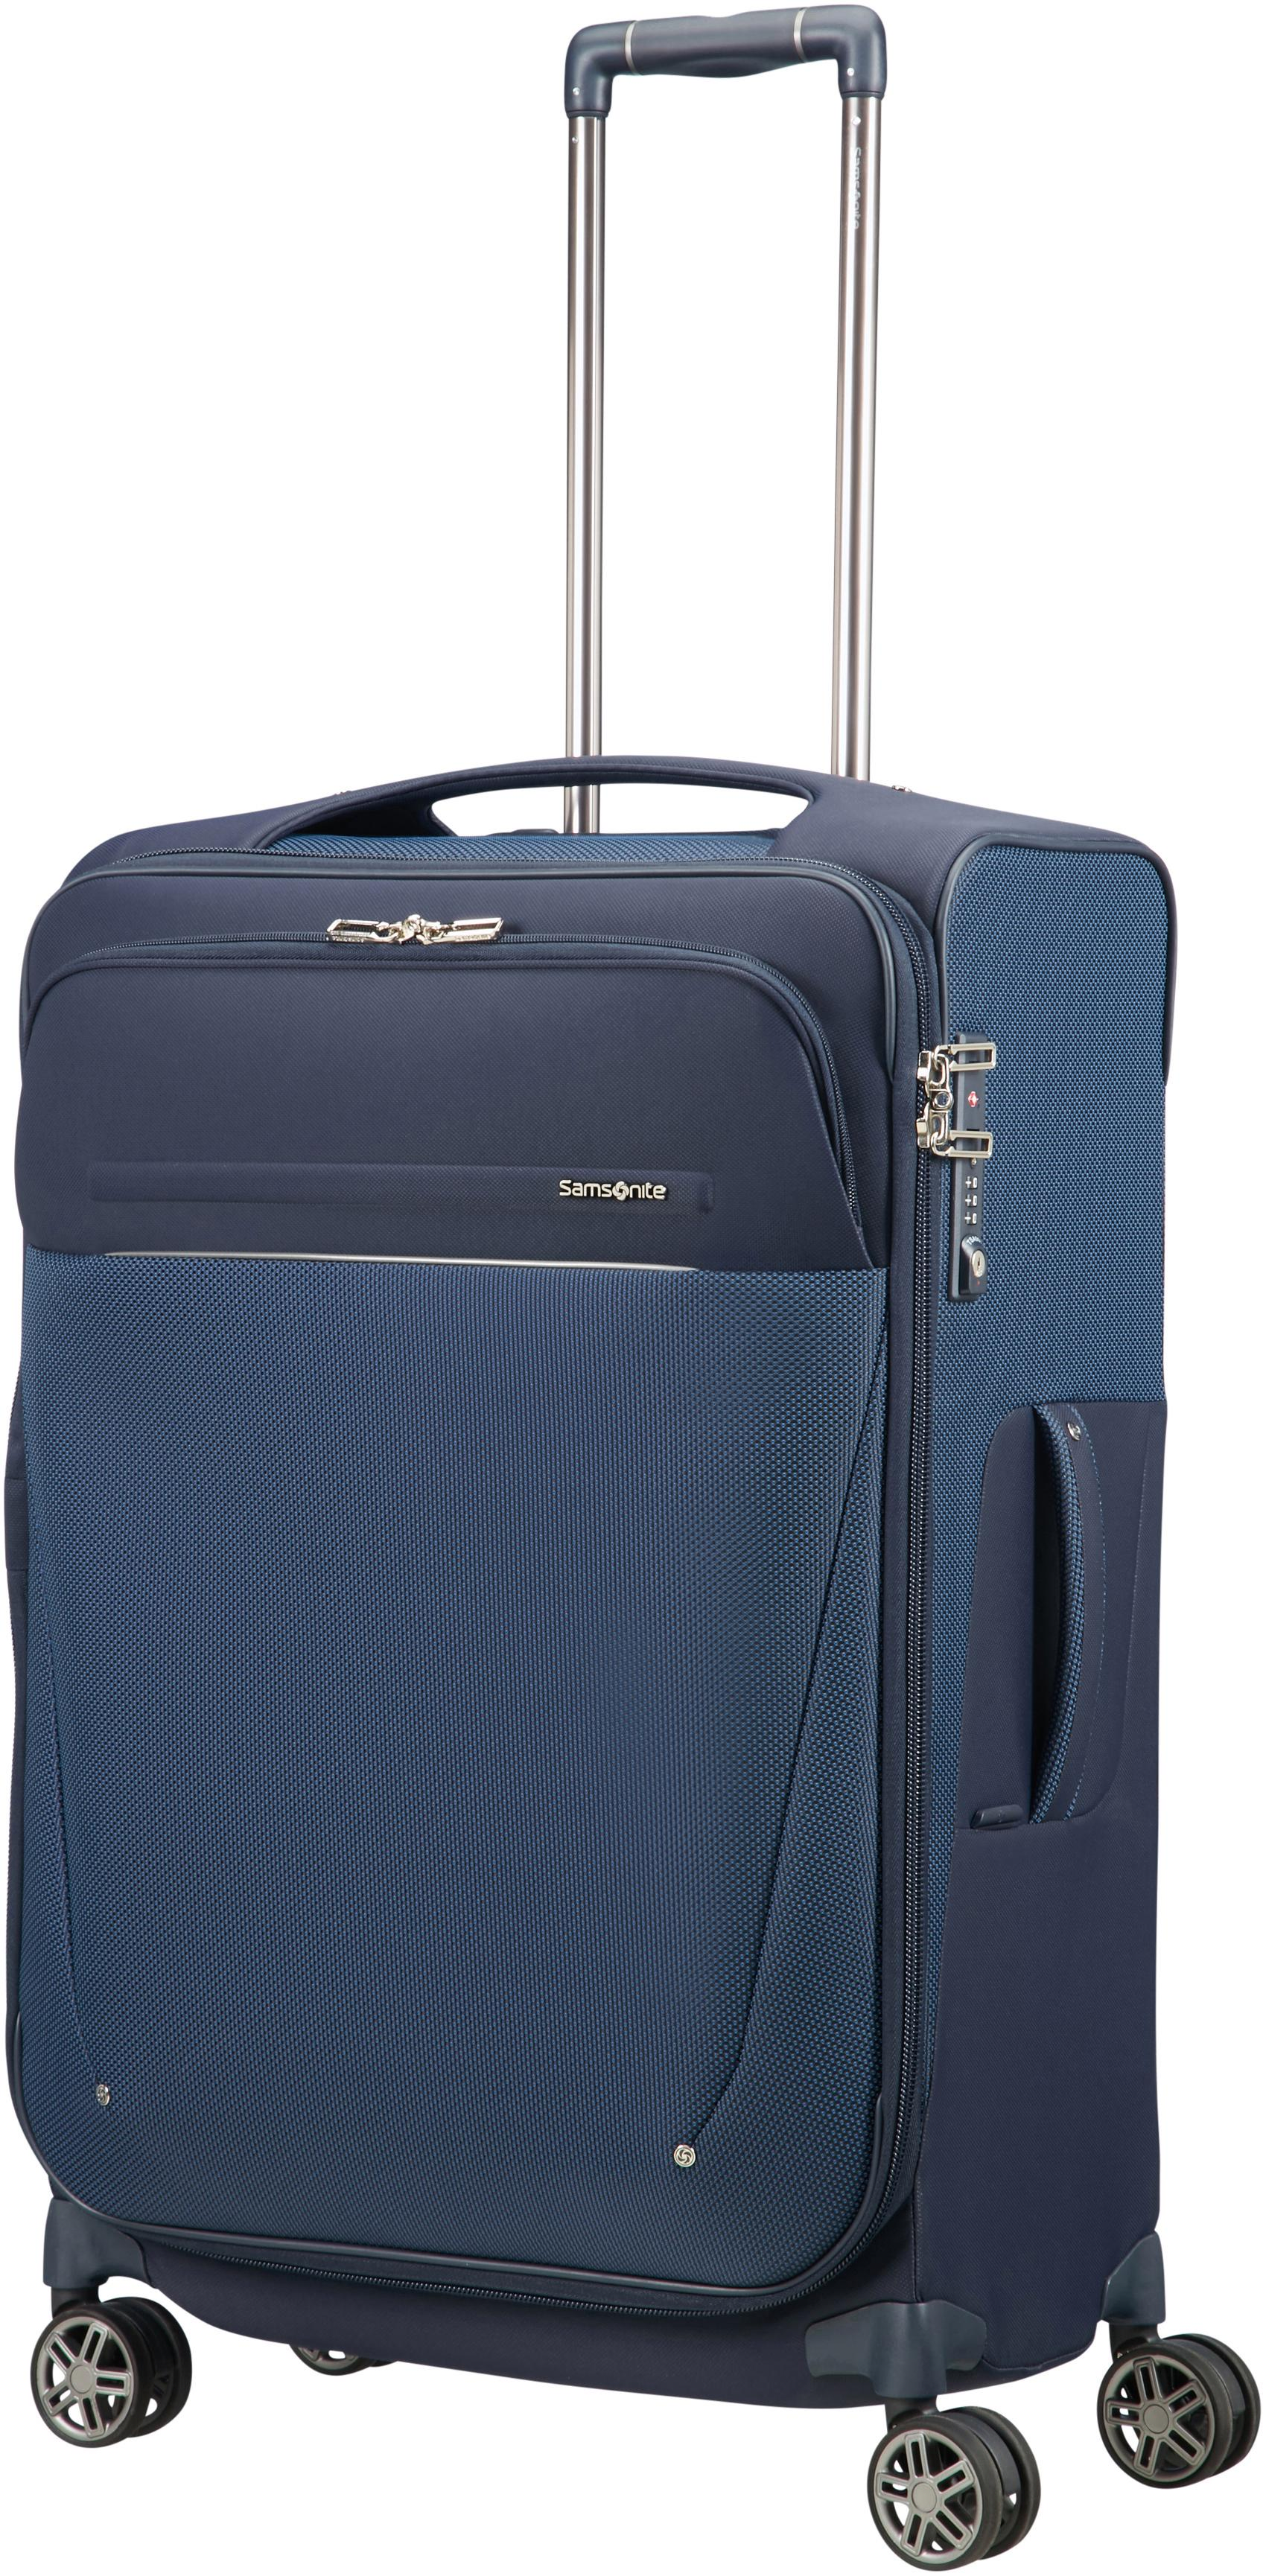 Samsonite Weichgepäcktrolley mit 4 Doppelrollen, »B-Lite Icon Spinner, 71 cm« | Taschen > Koffer & Trolleys > Trolleys | Blau | Samsonite